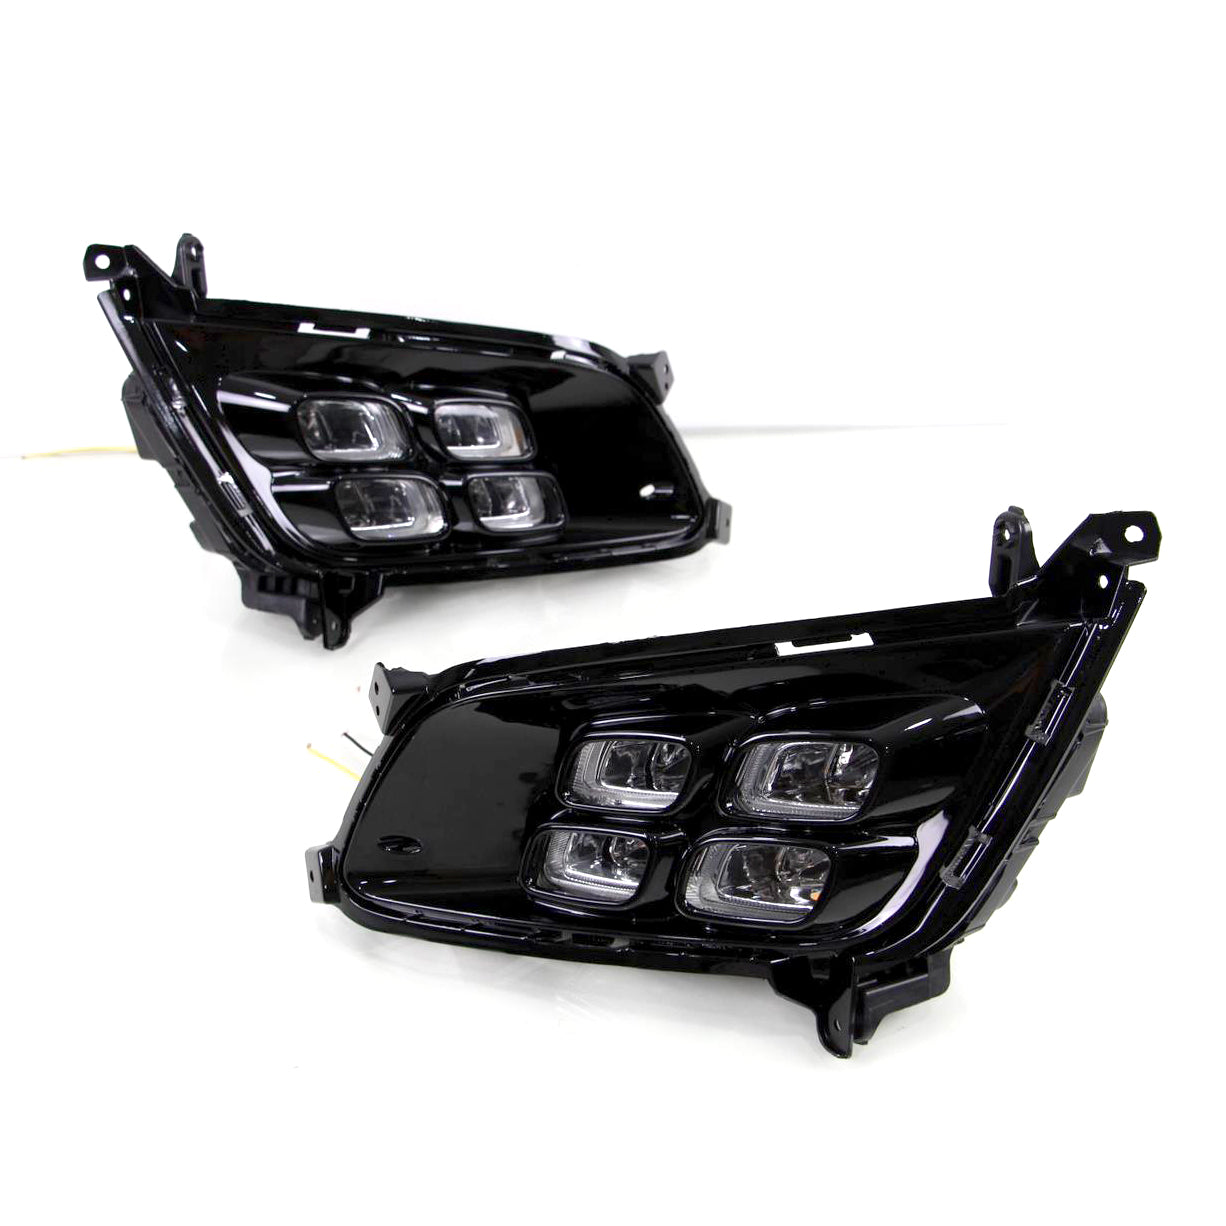 LED Daytime Running Lights (DRL) Turn Signal Lamp For KIA K5 2013-2015